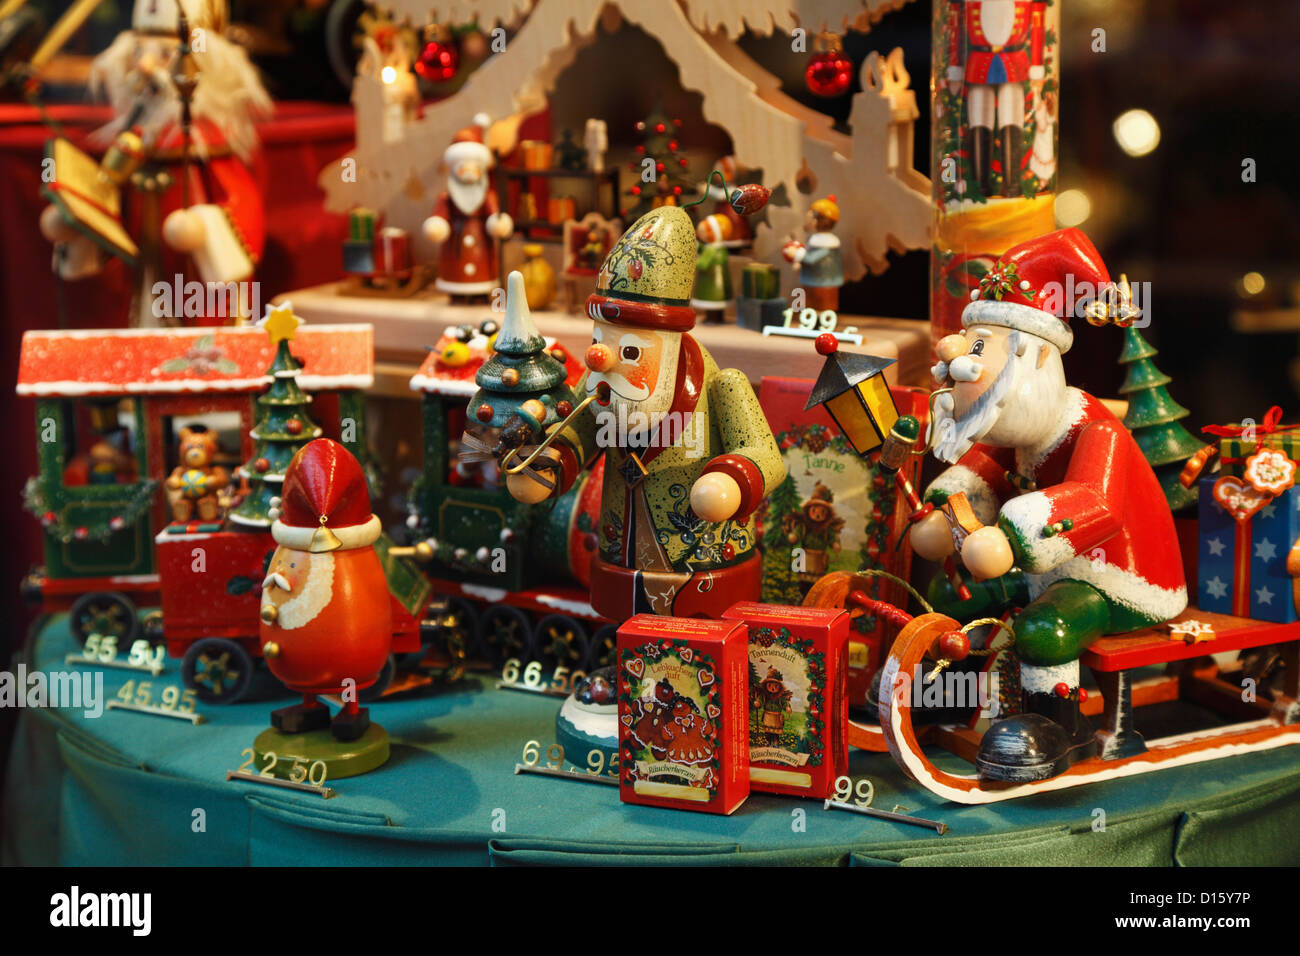 vintage look christmas toys and decorations in a store window display in bruges belgium - Christmas Toys